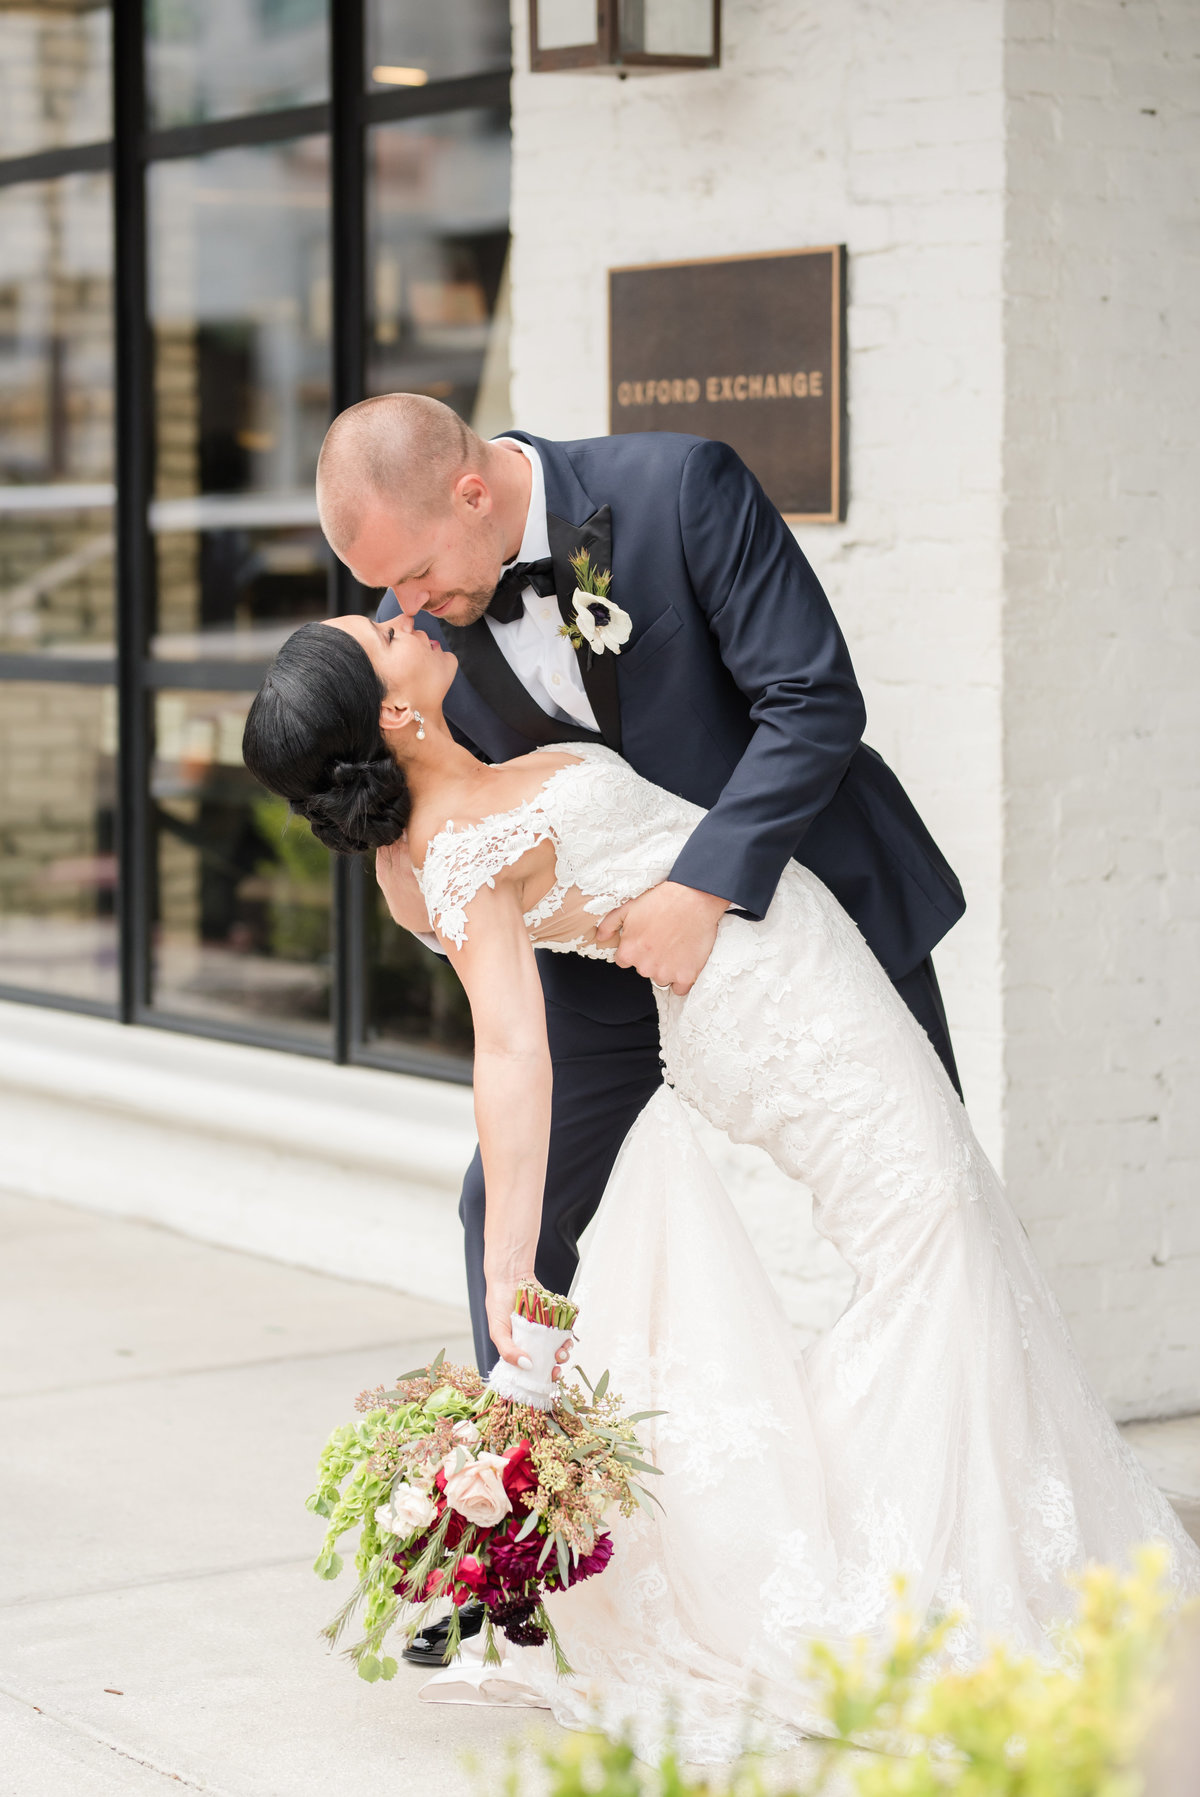 Tampa wedding at the Oxford Exchange 43